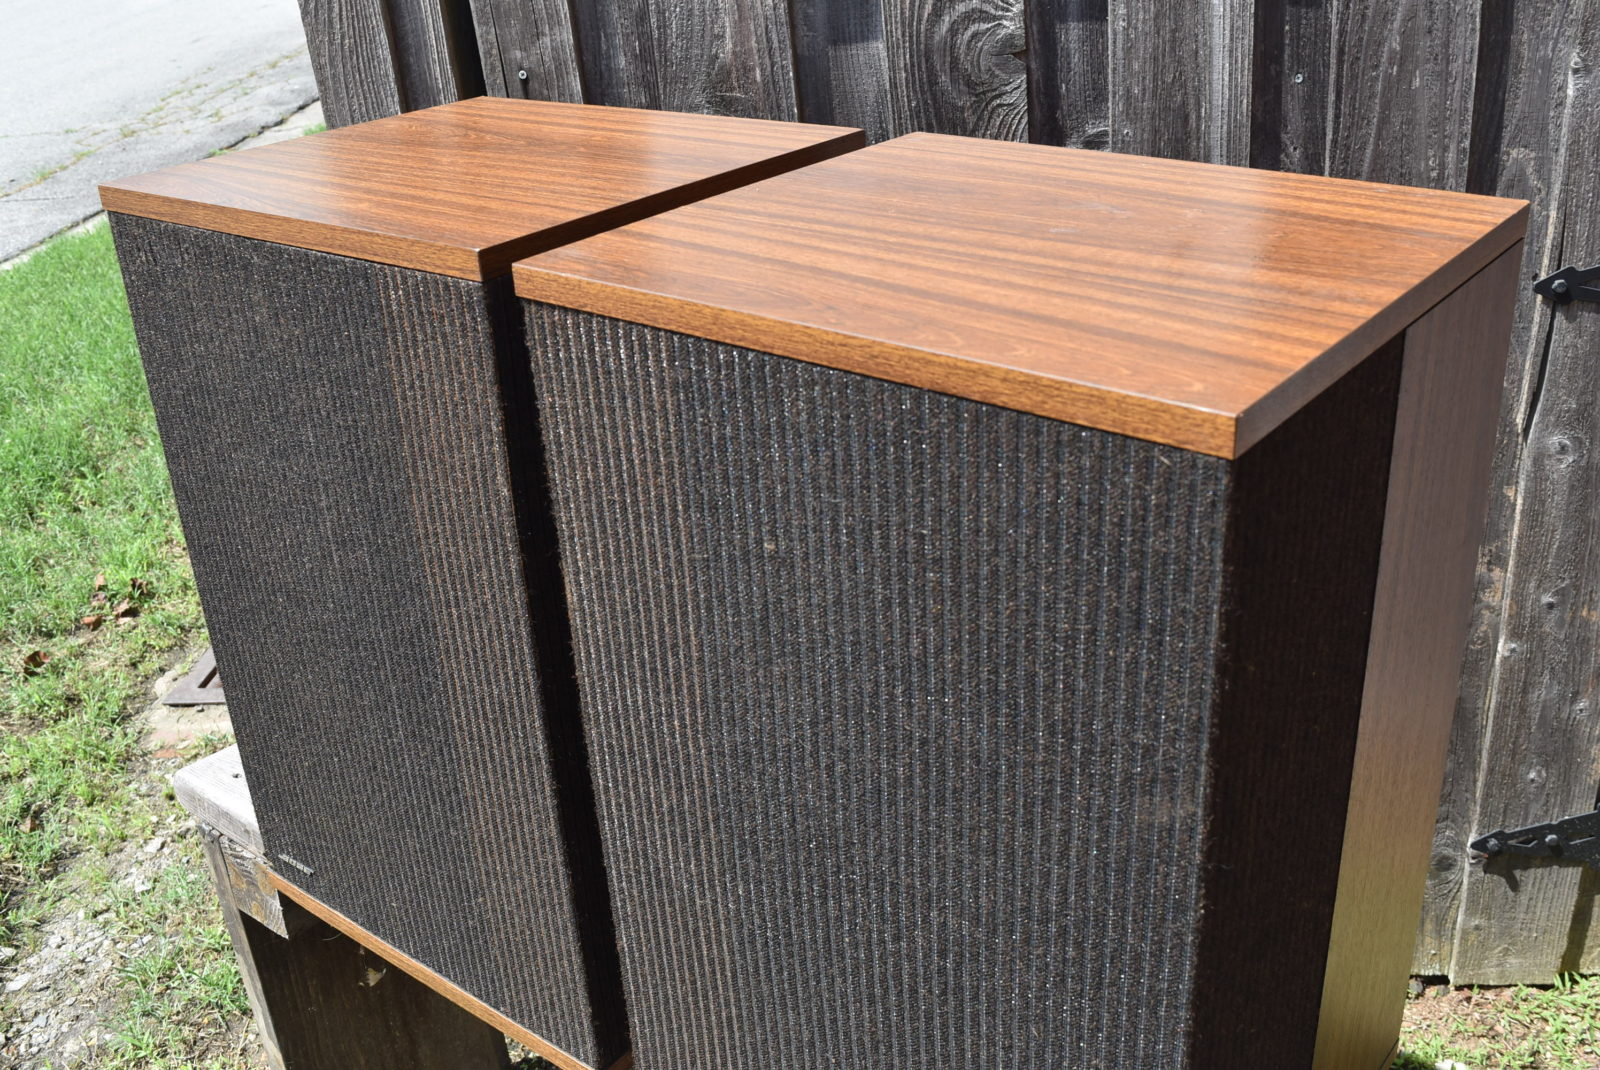 Bose Speakers Model: 501 Series IV 3 Way With 10u2033 Woofers 125 Watts Of  Handling Power. All Speakers And Crossovers Are Original. Wood Grain  Cabinets